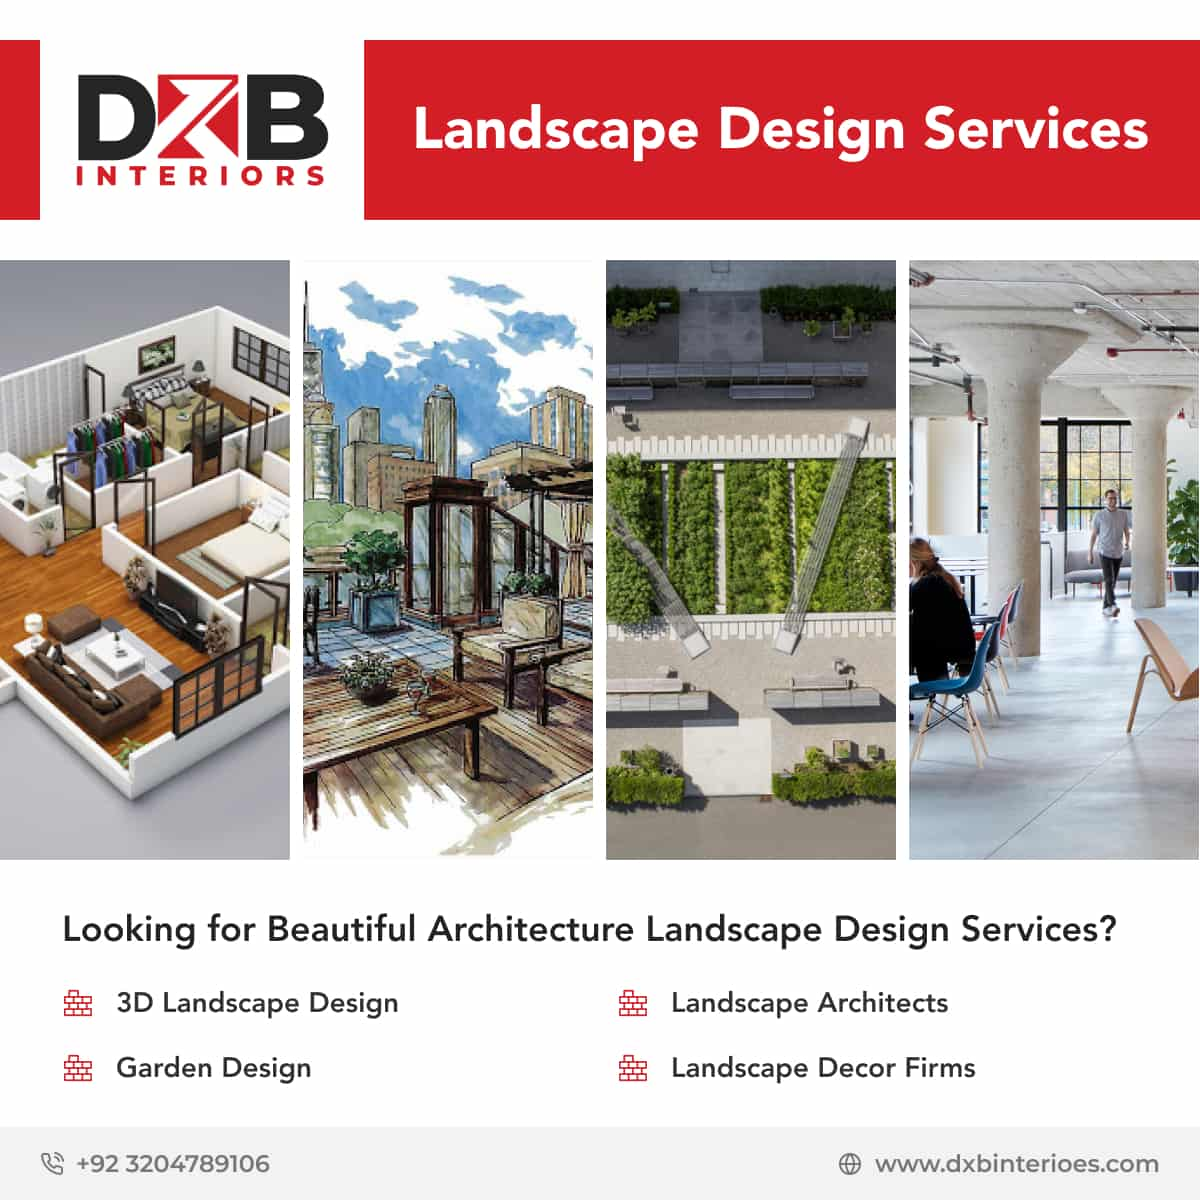 Architecture Landscape Design Services From DXB Interiors